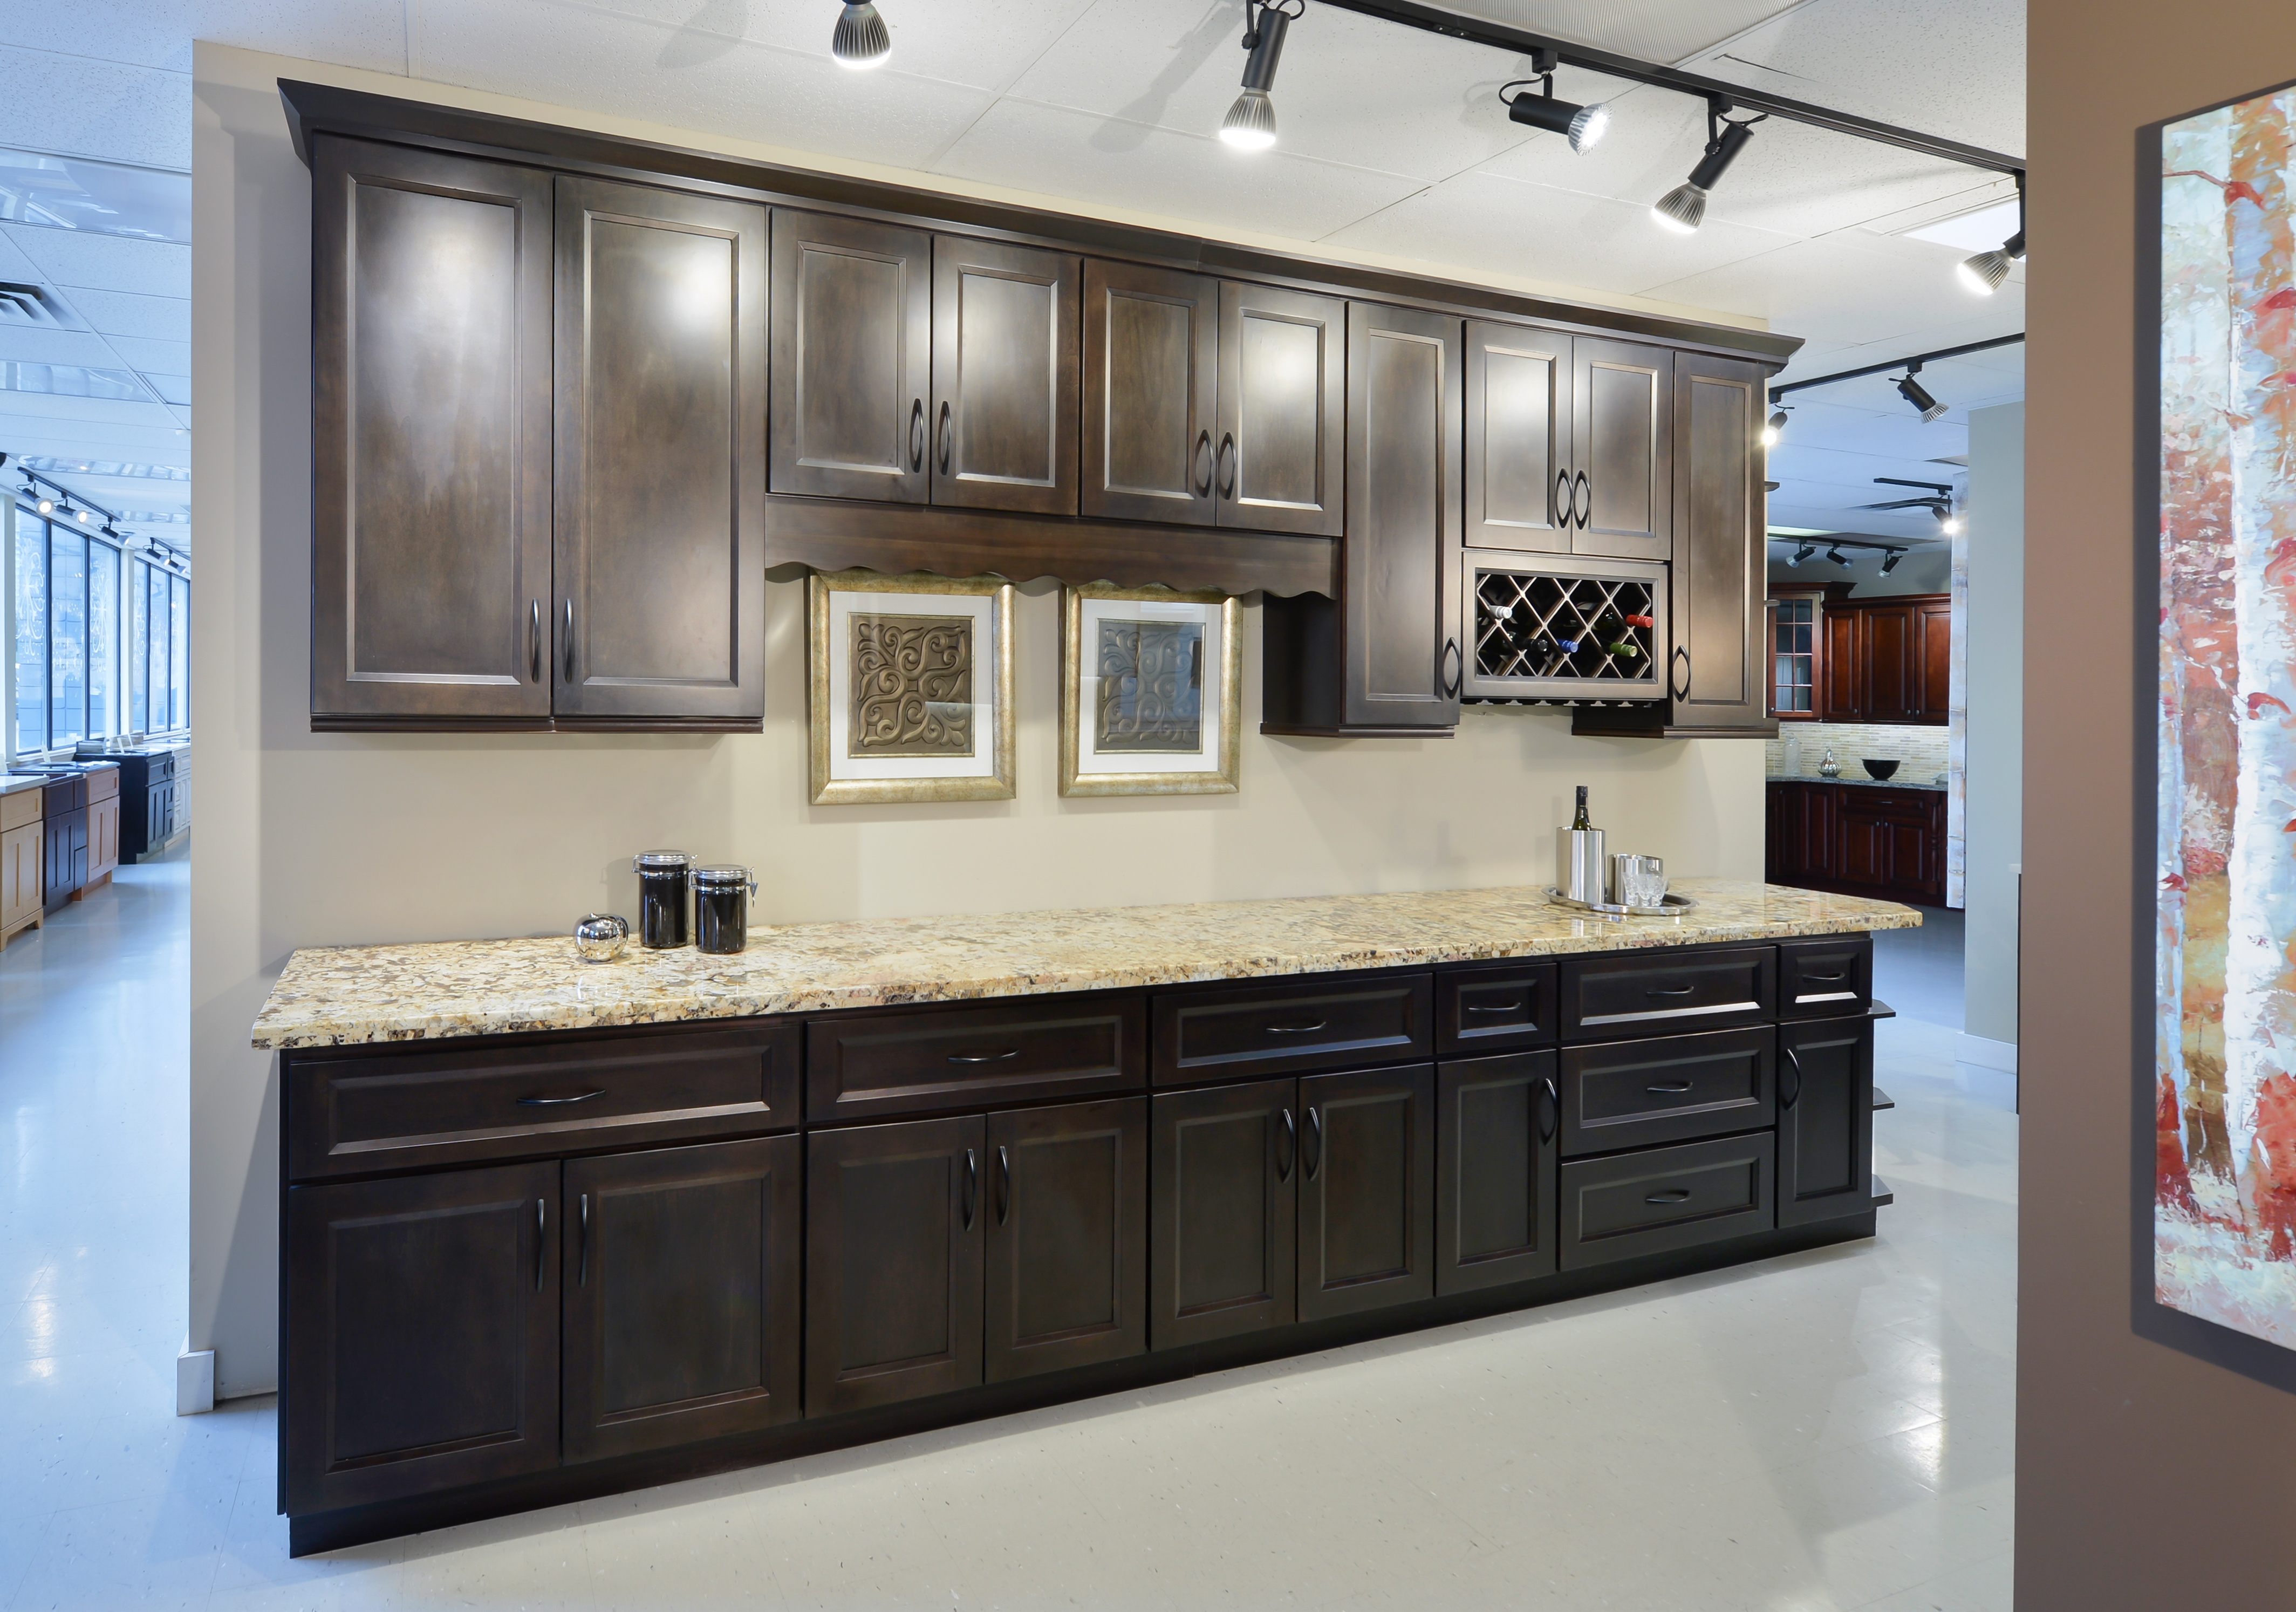 Classic Wood Cabinetry - Absolute Charcoal Sample Kitchen